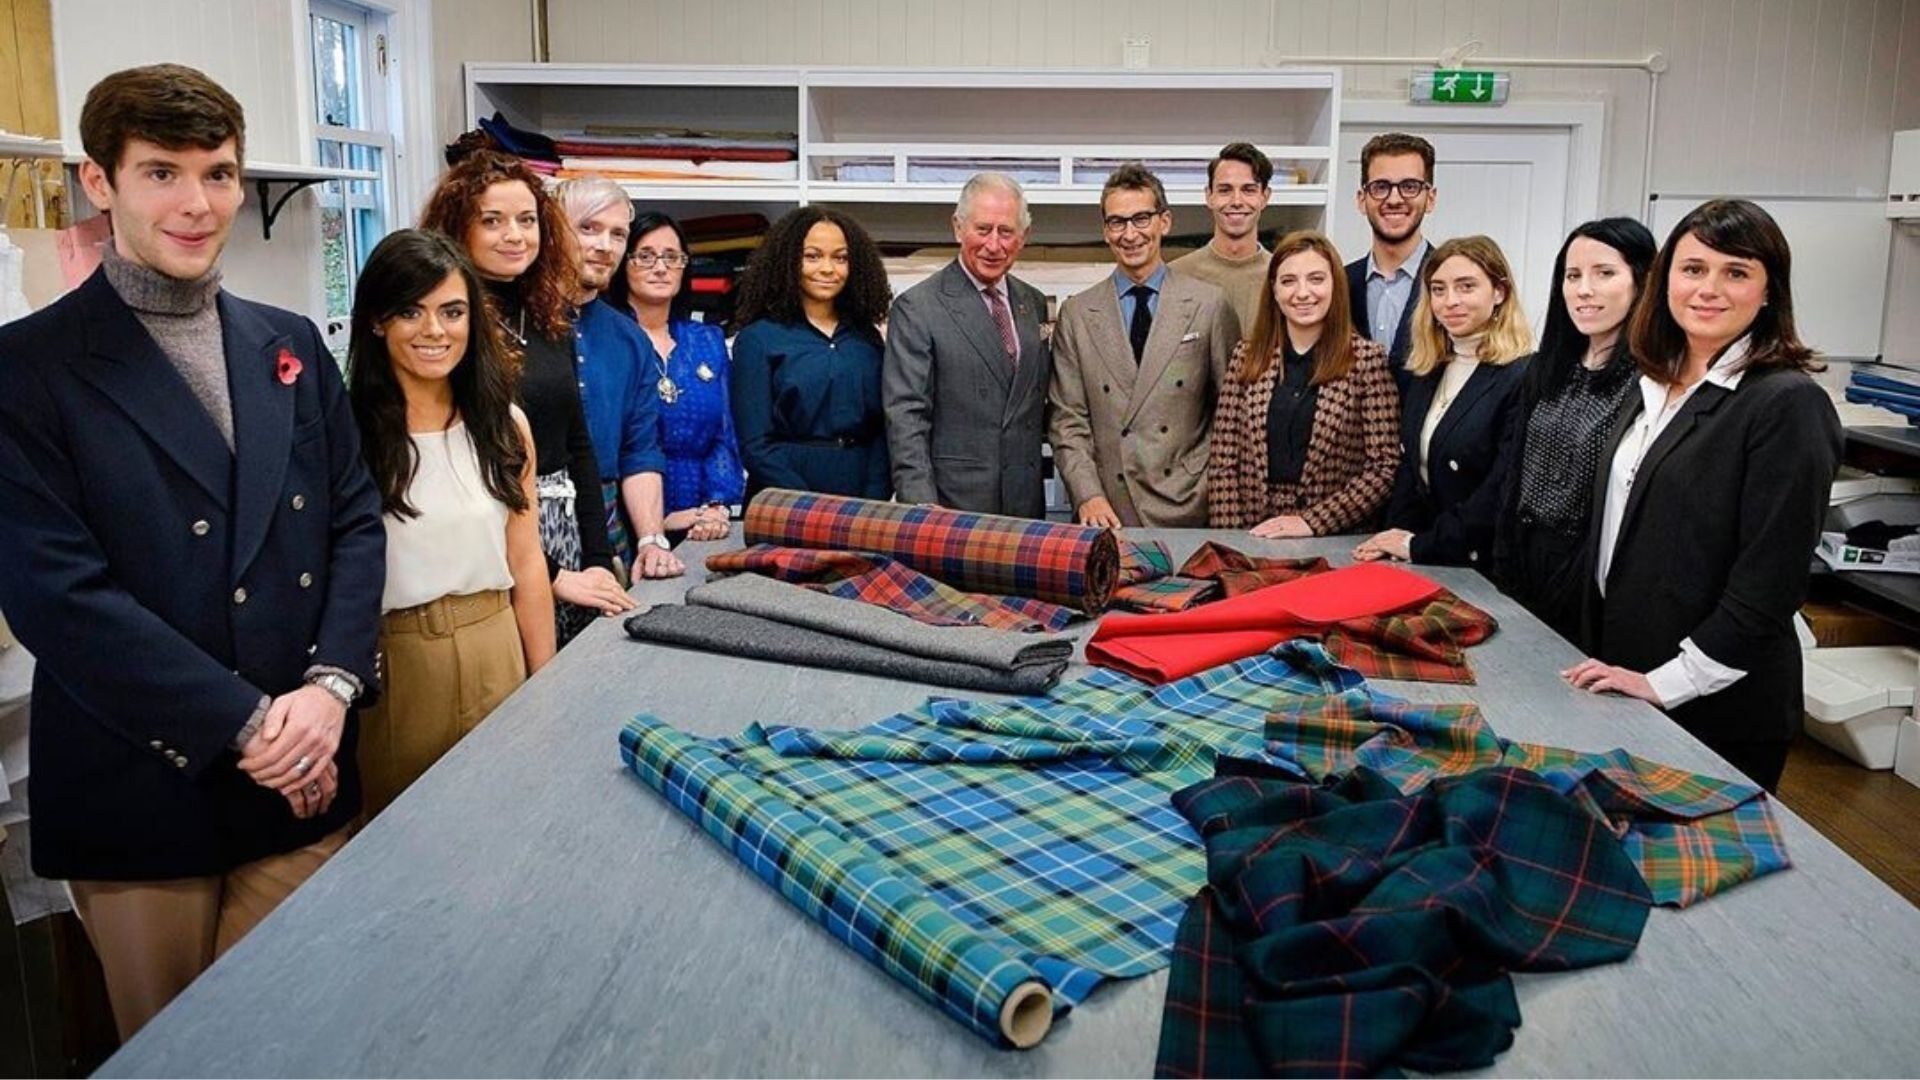 Prince Charles Is Releasing His Very Own Fashion Collection